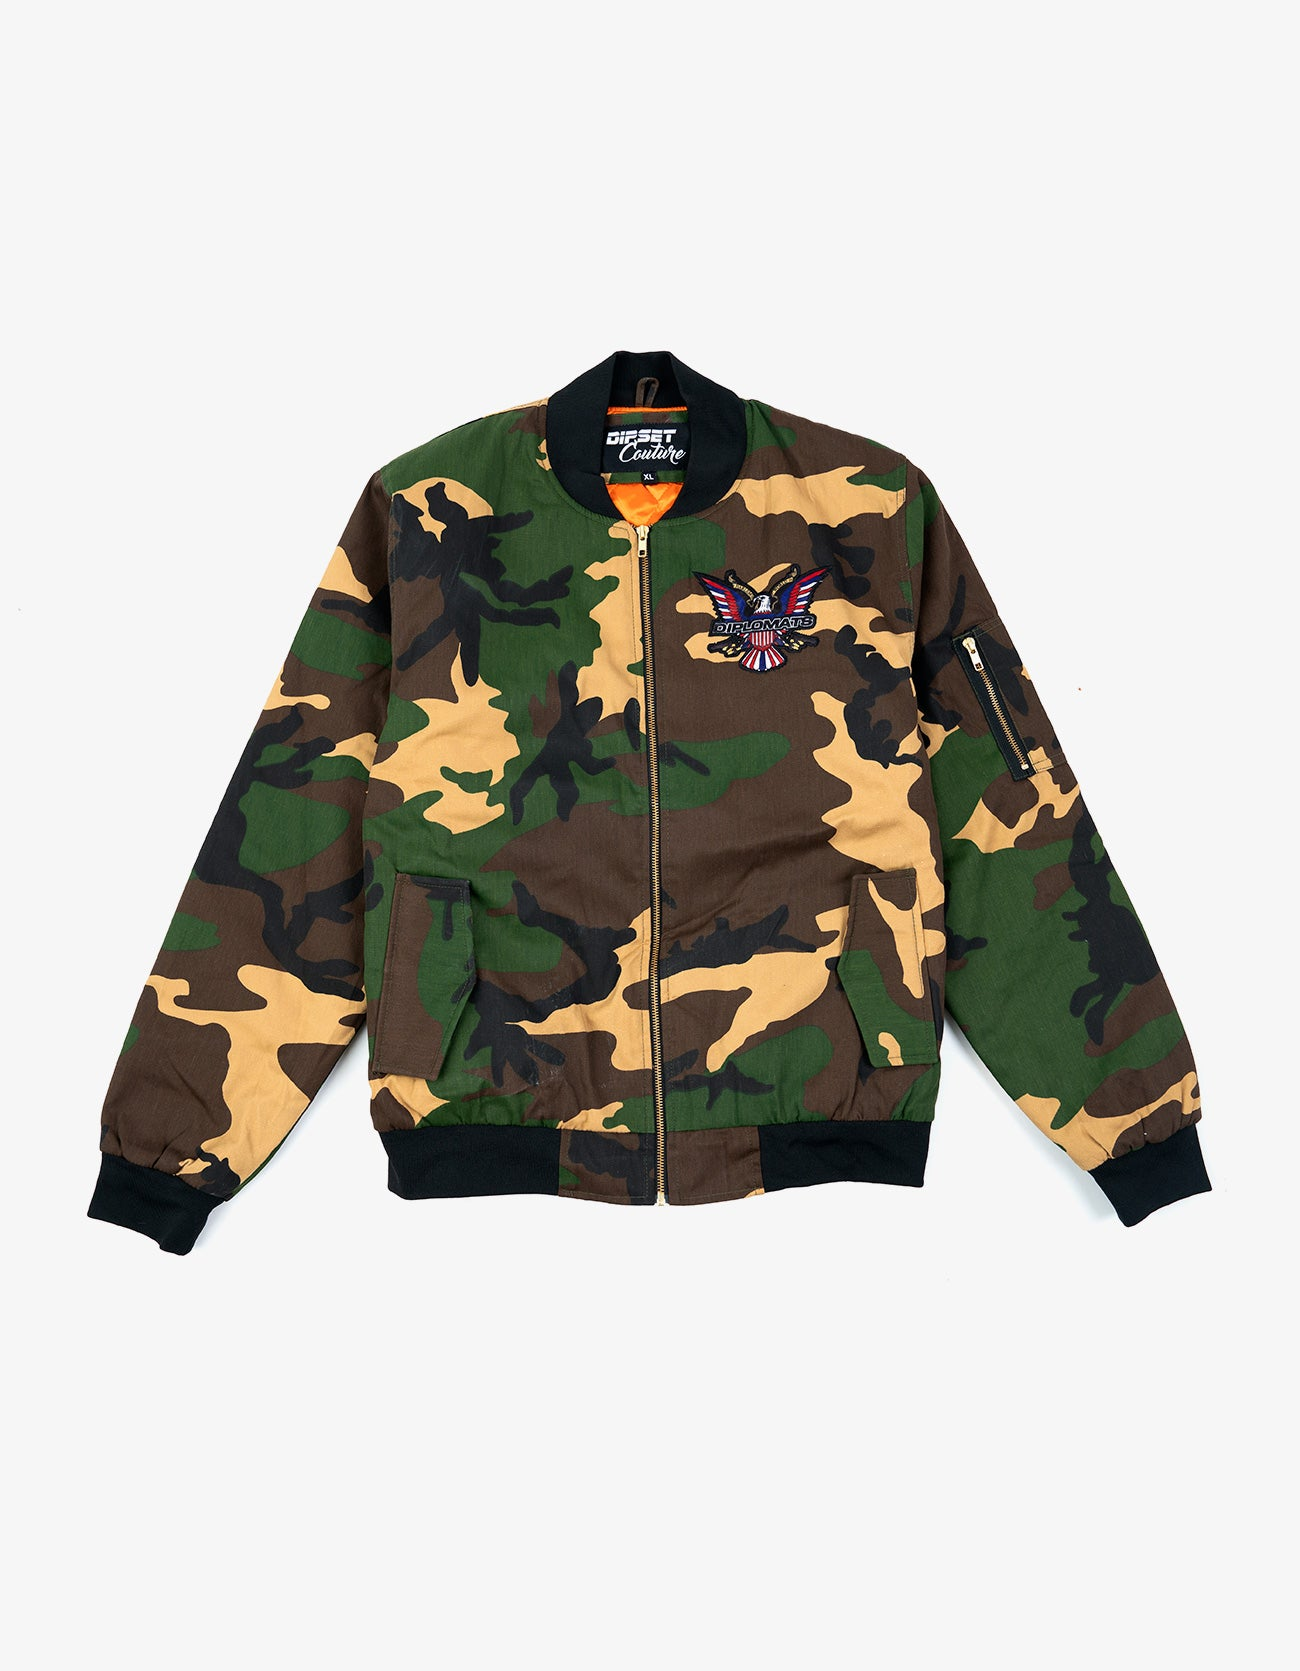 DIPSET Couture Army Fatigue Bomber Jacket